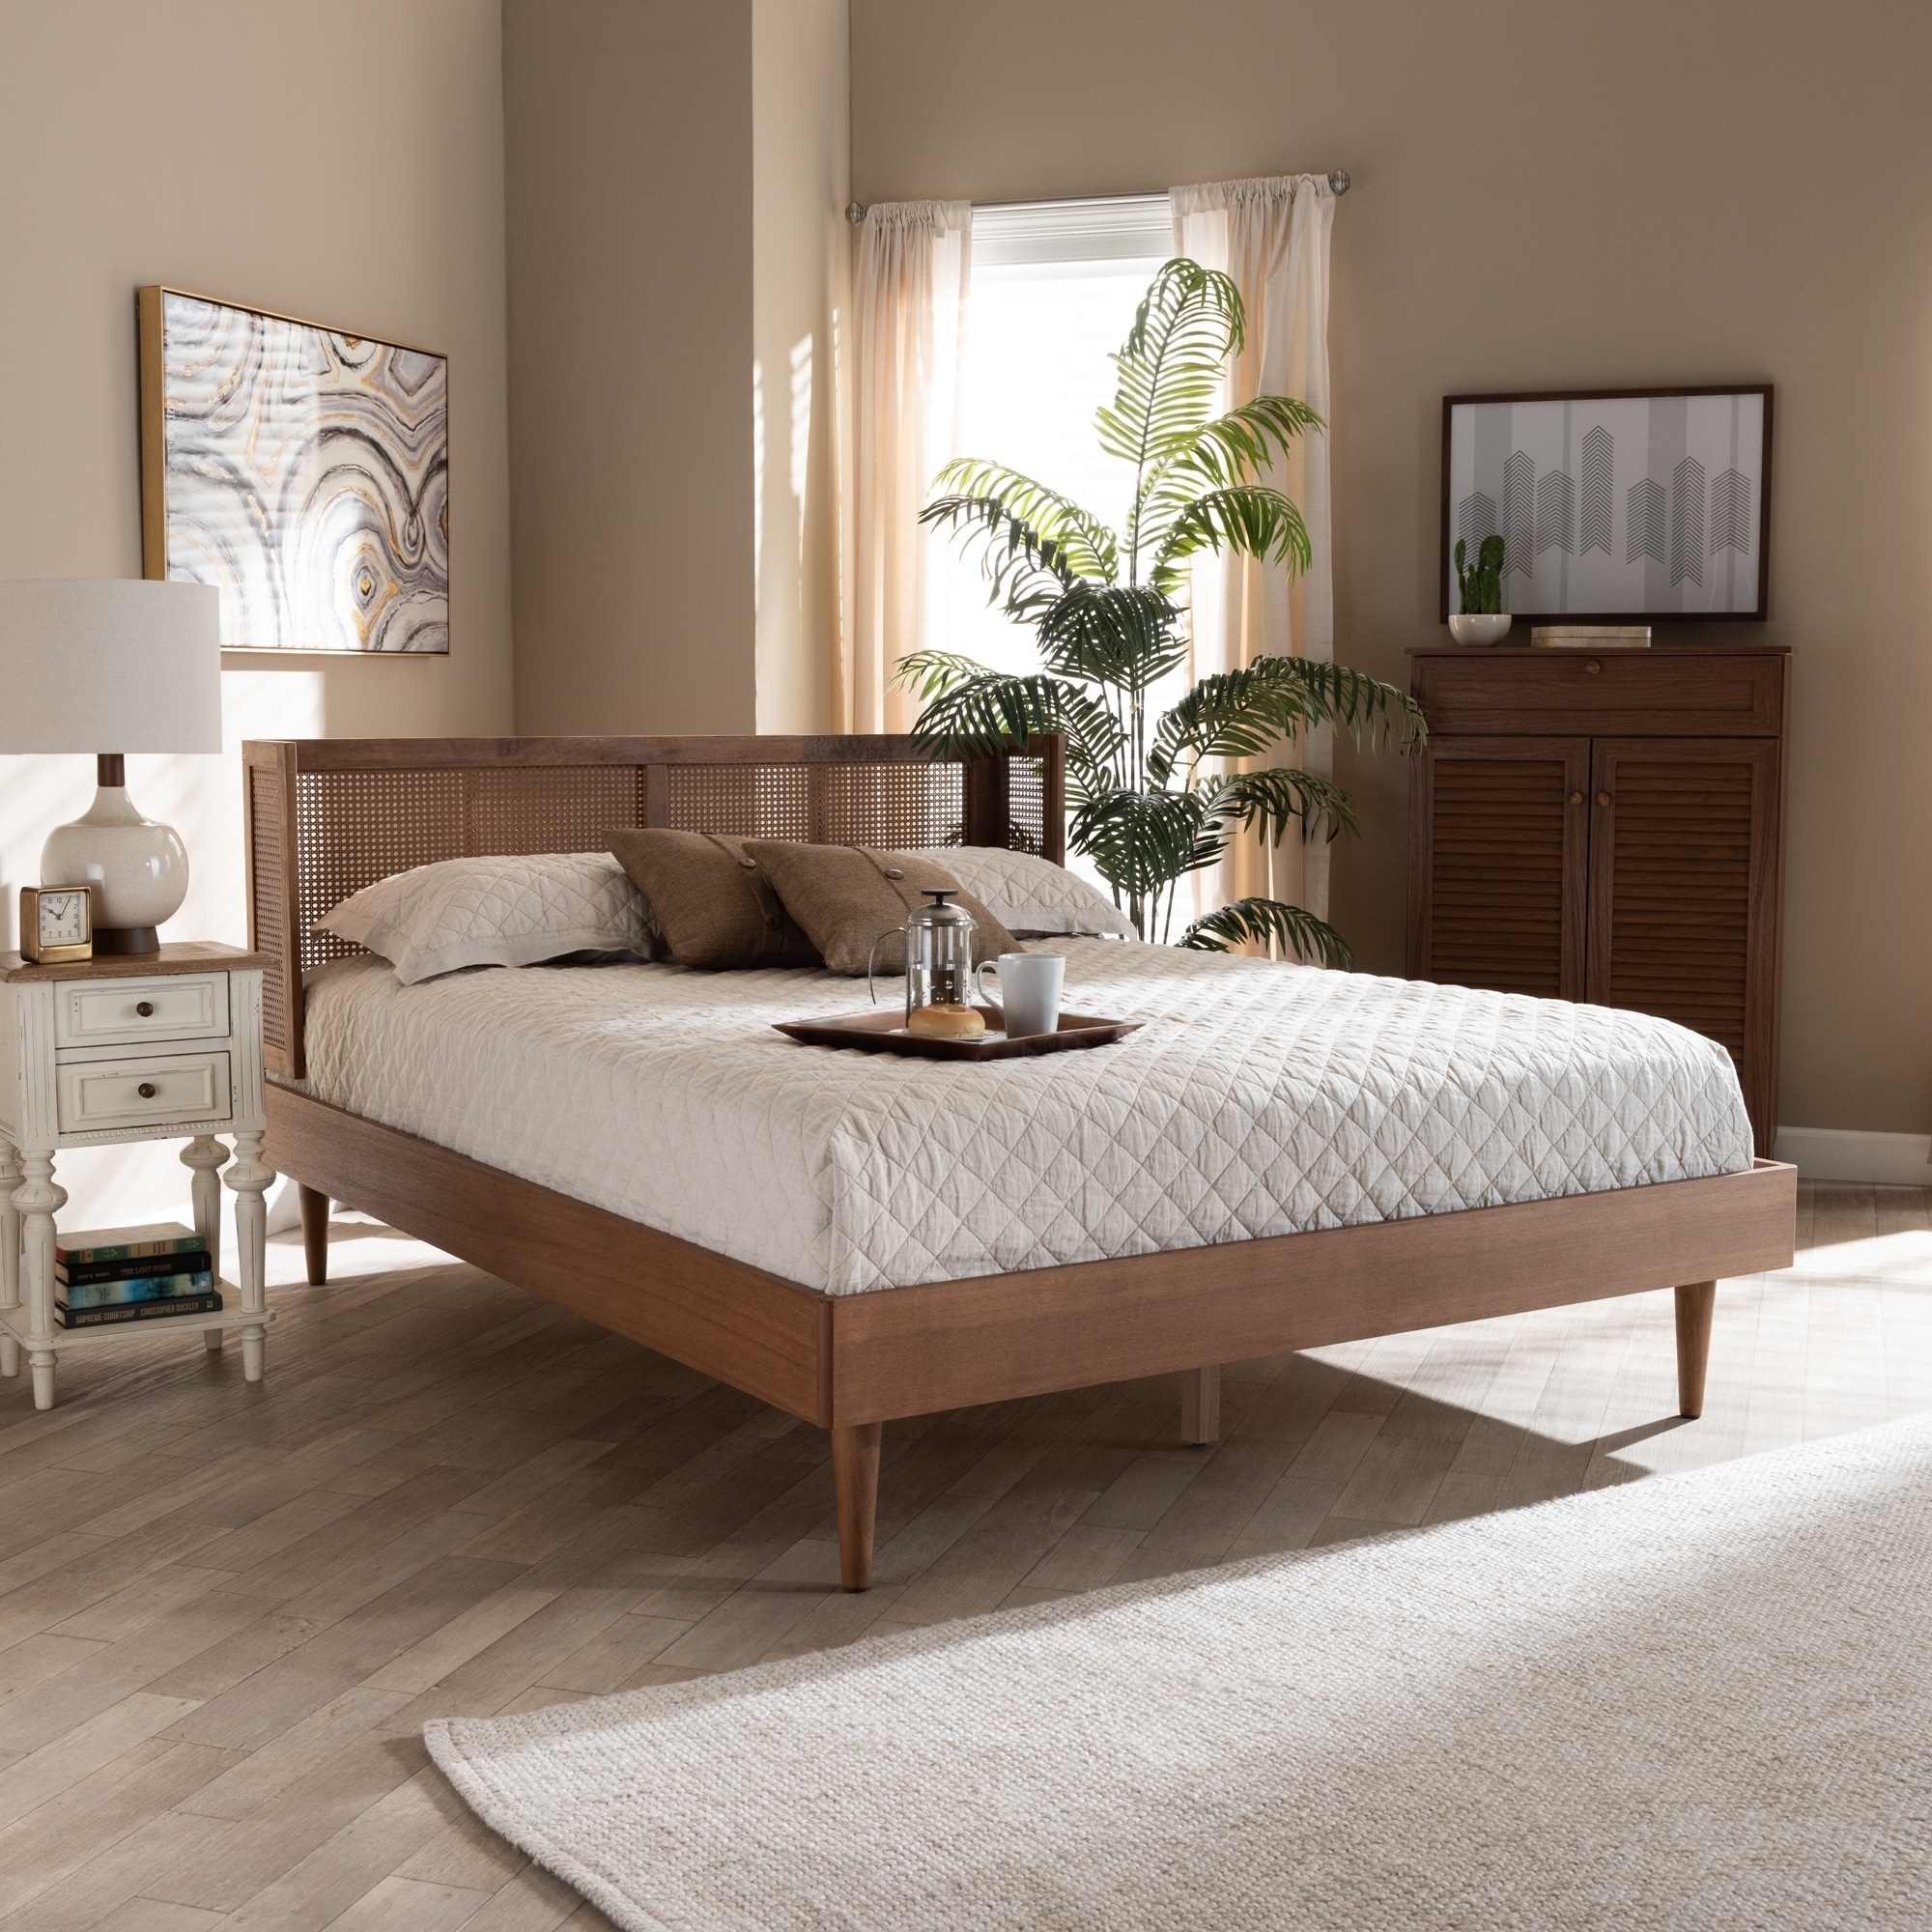 Picture of: Carson Carrington Dagas Mid Century Modern Platform Bed Overstock 29065808 King